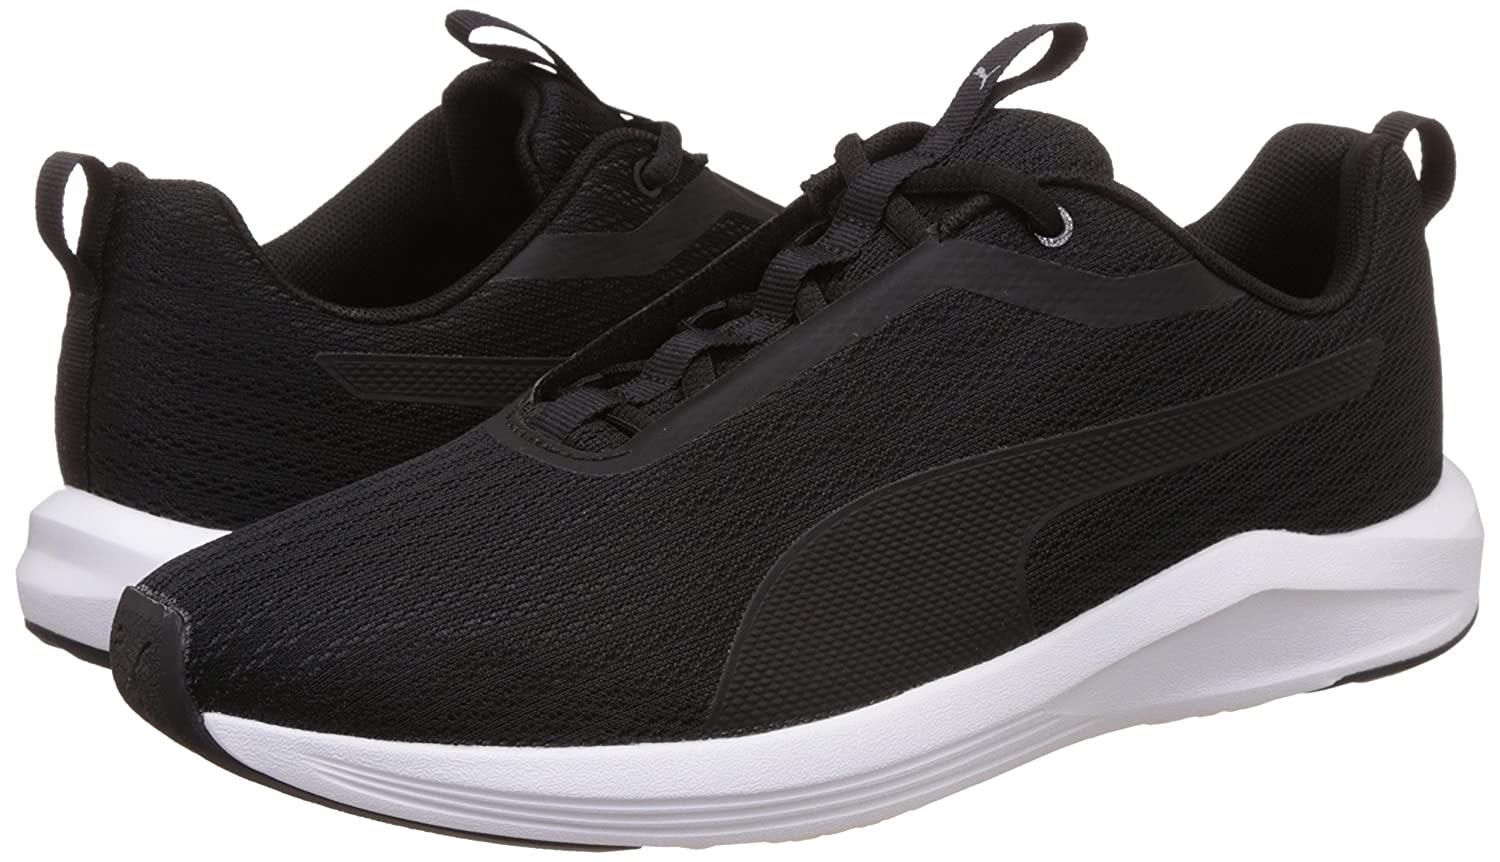 Womens Prowl Fitness Shoes Puma a4rmSrx